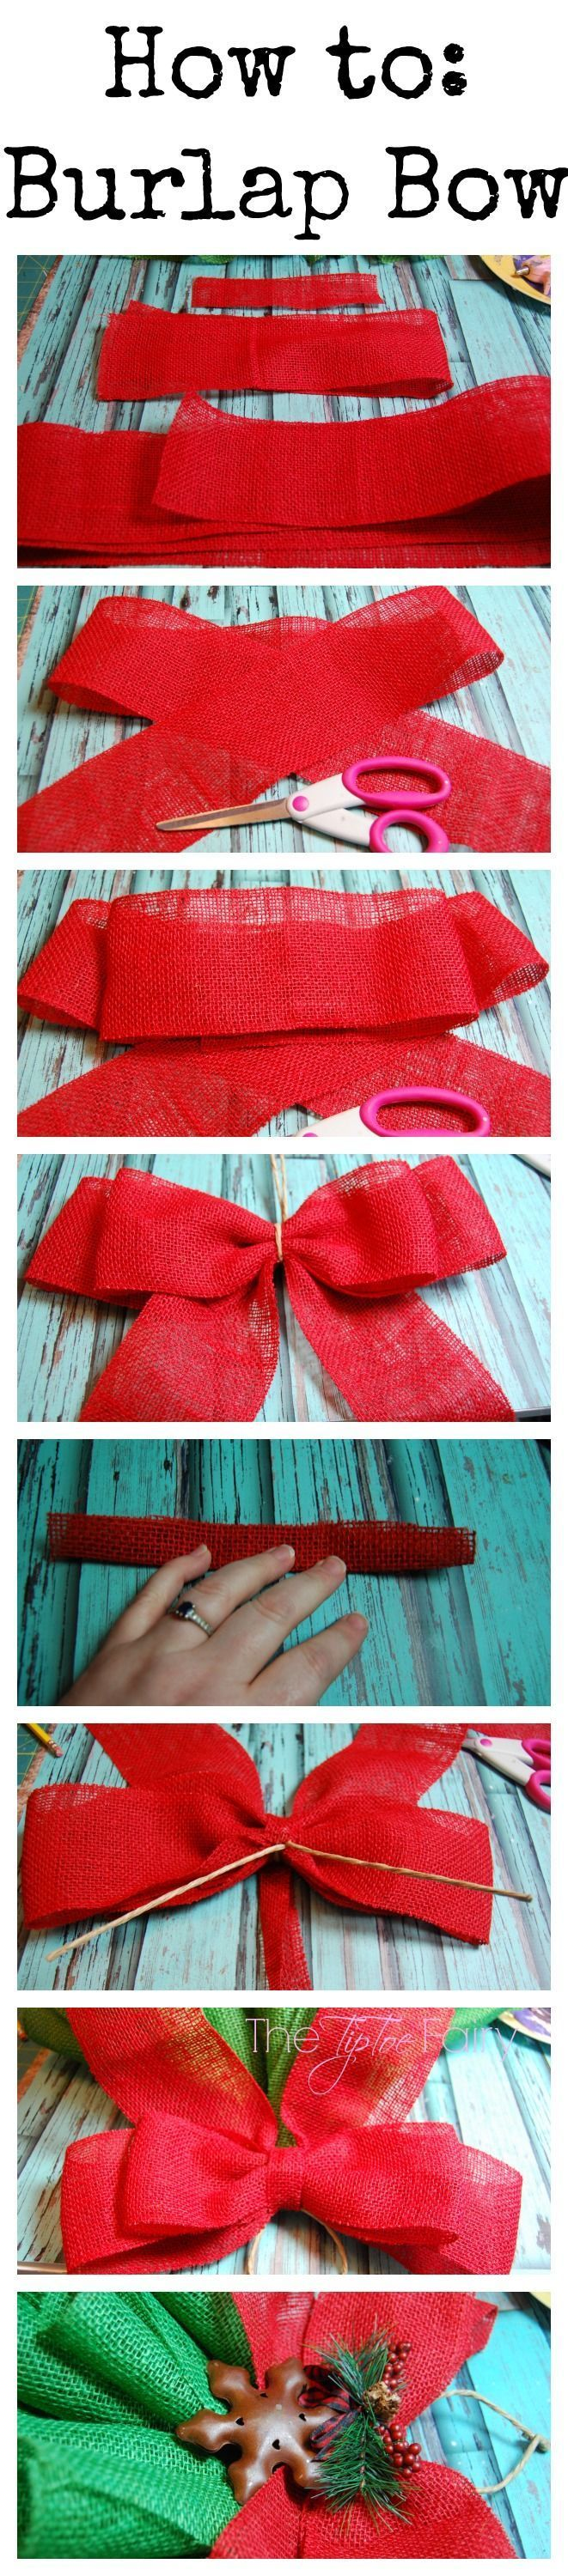 Best 25+ Christmas bows ideas on Pinterest | Ribbon bow tutorial ...